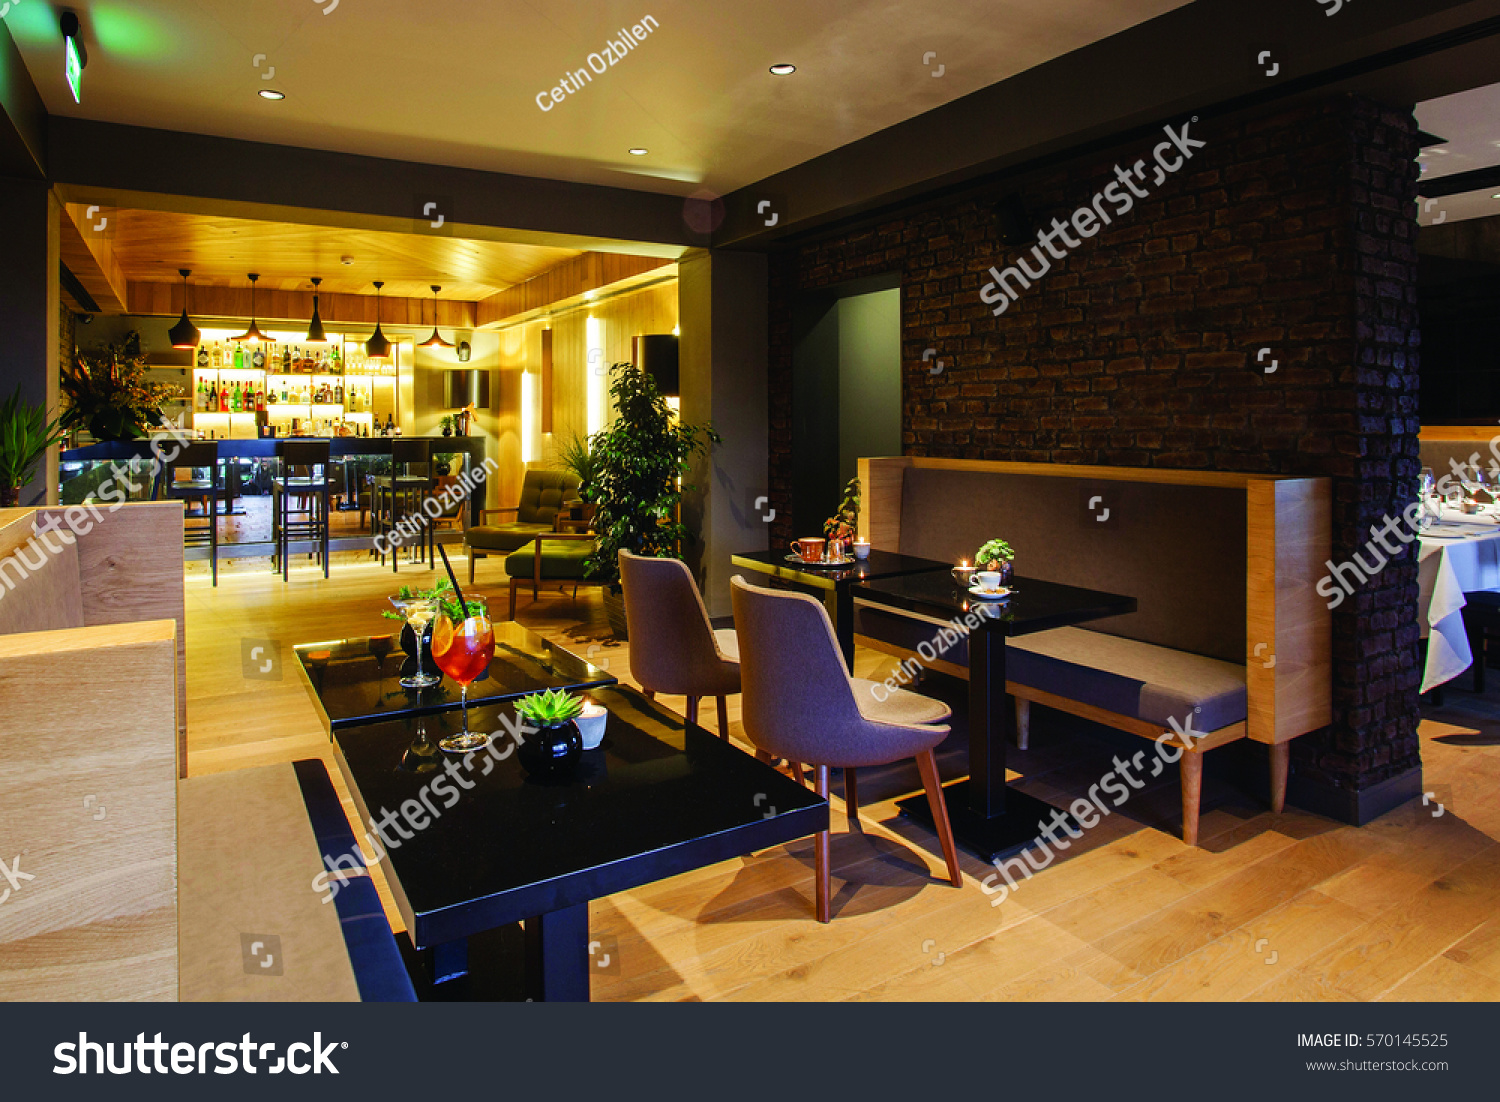 Interior Design Groups Part - 16: Paris, France - 12 January 2017 - The Interior Design Of A Restaurant And  Seating